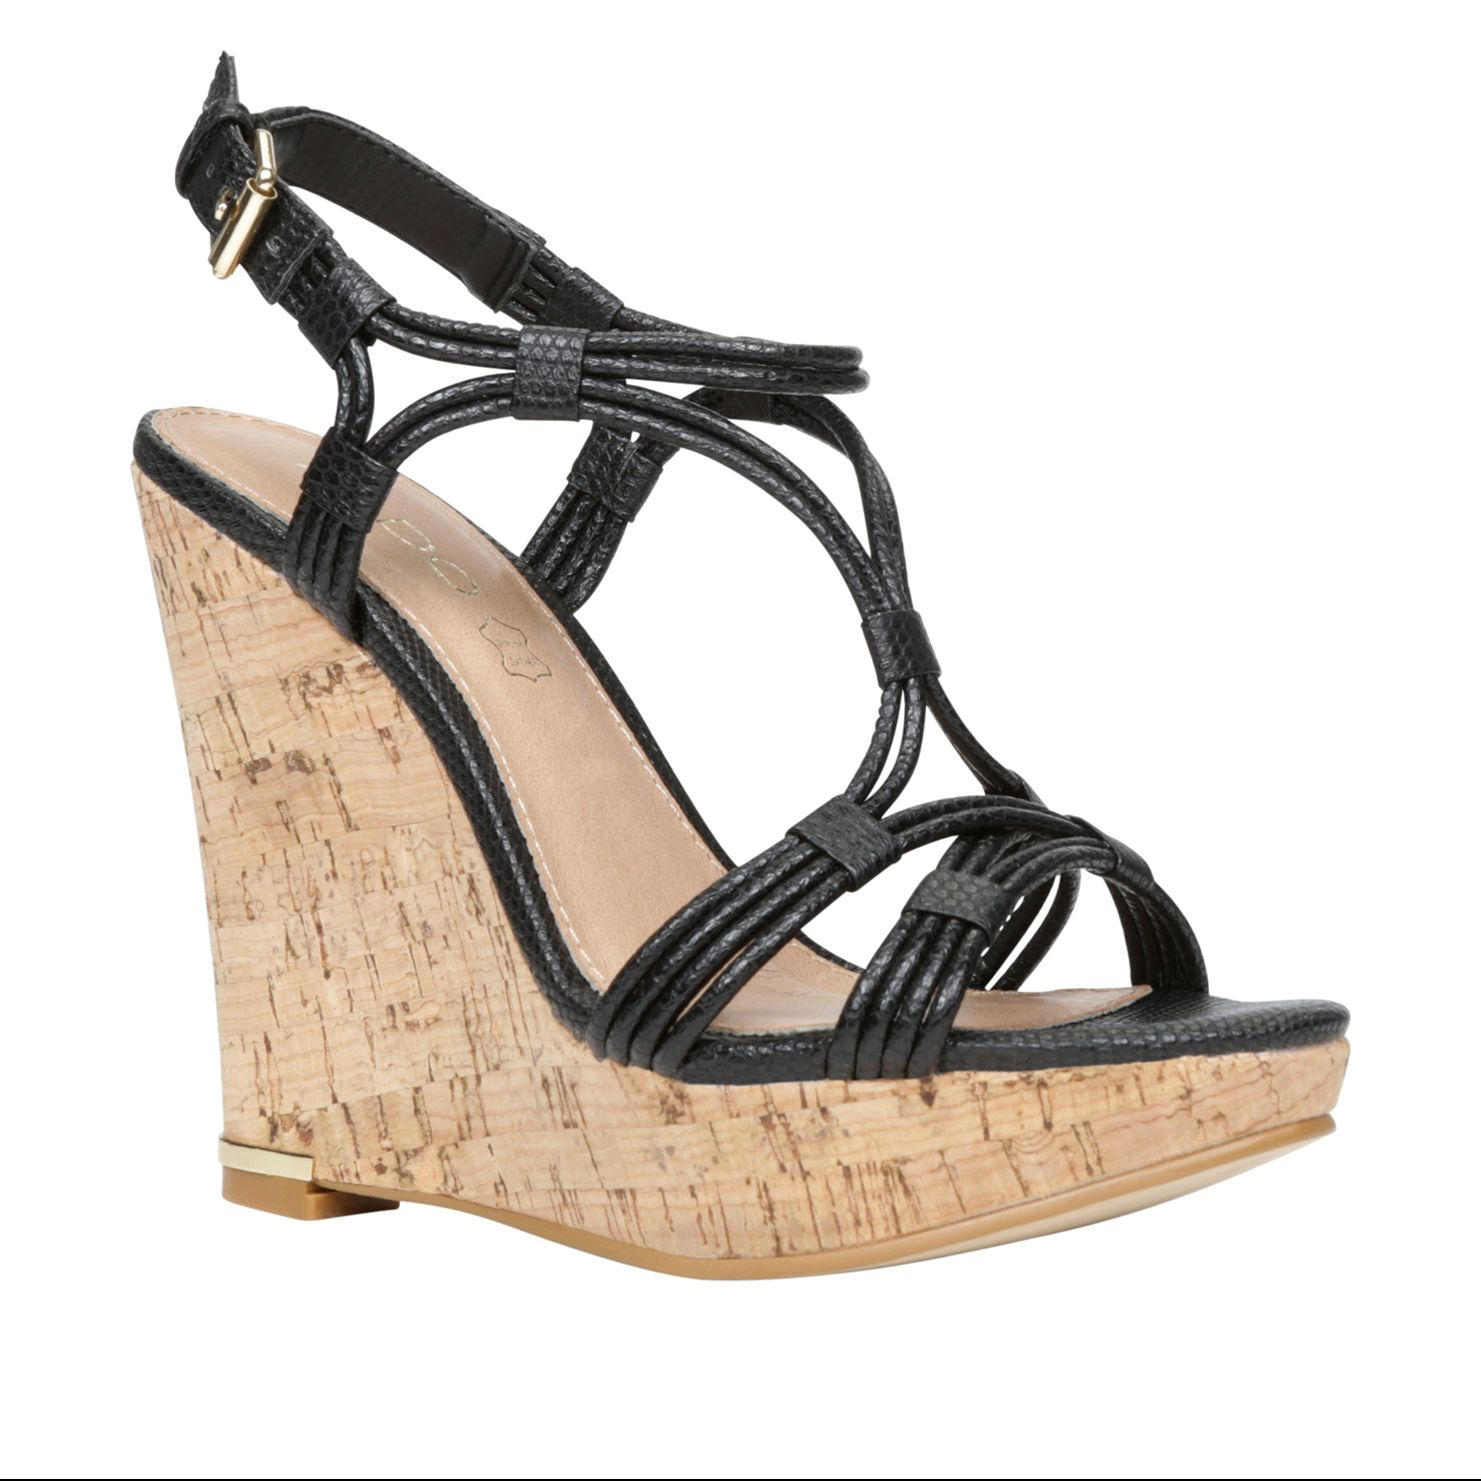 Ferralla wedge sandals